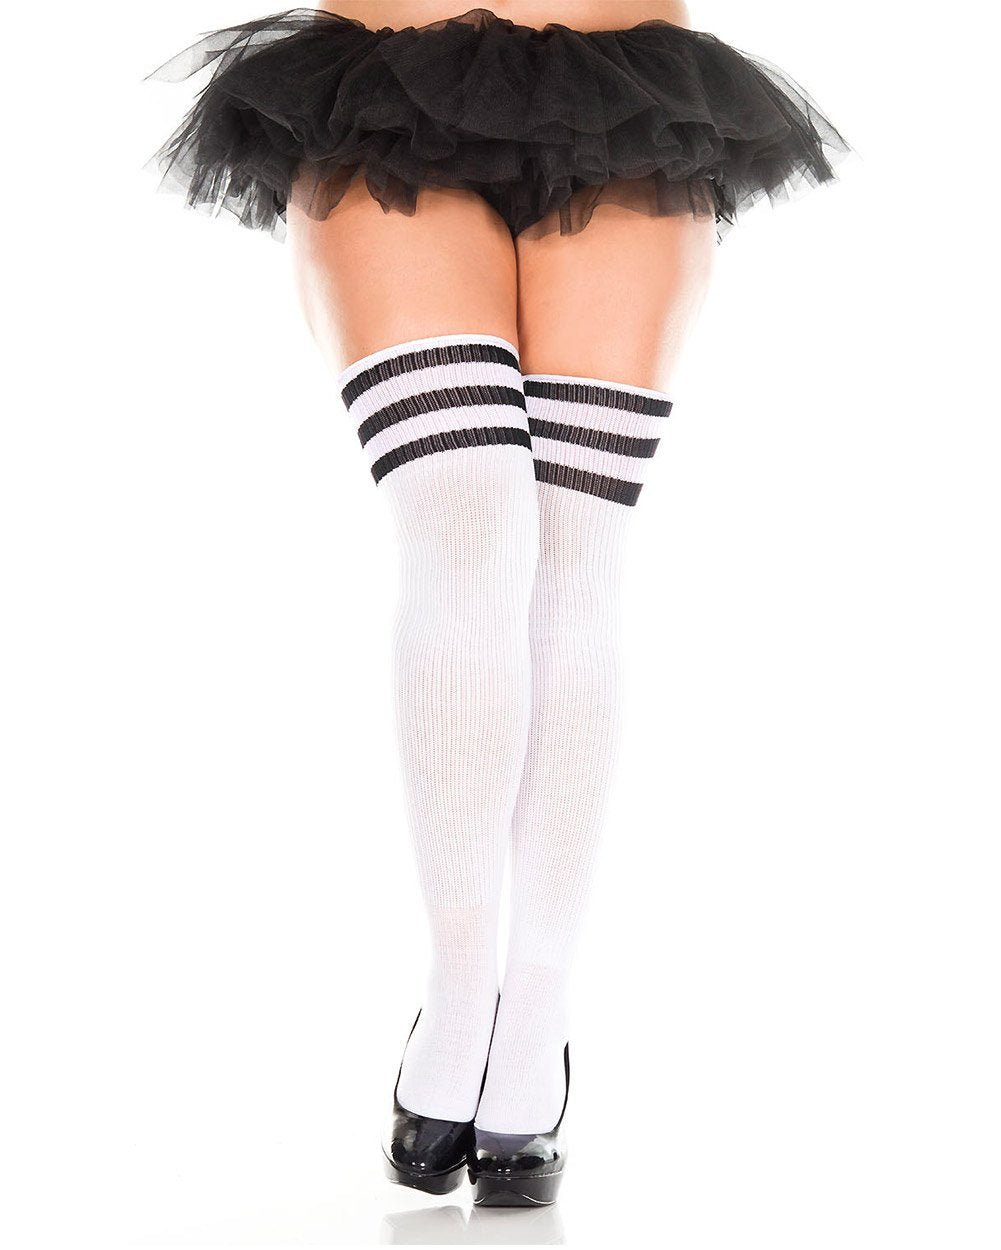 d64ca195c66e30 ... Plus Size Athlete Acrylic Thigh Highs with Striped Top-White/Black